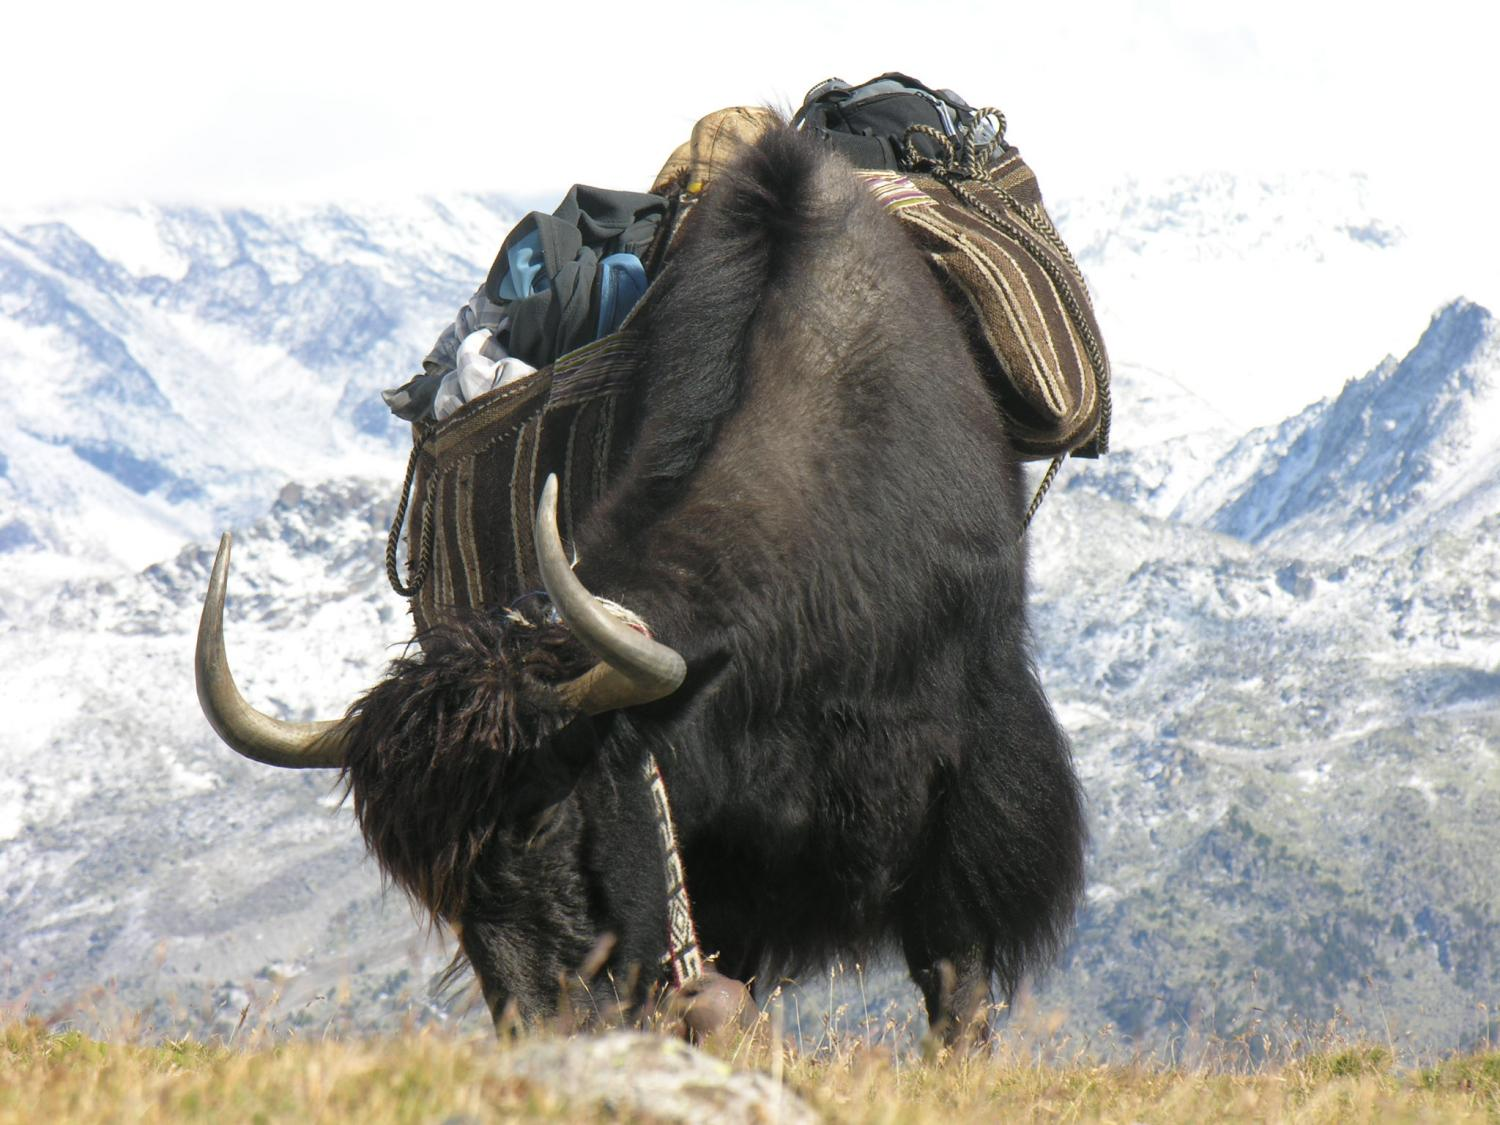 Image Of A Yak: The Bovine Heritage Of The Yak